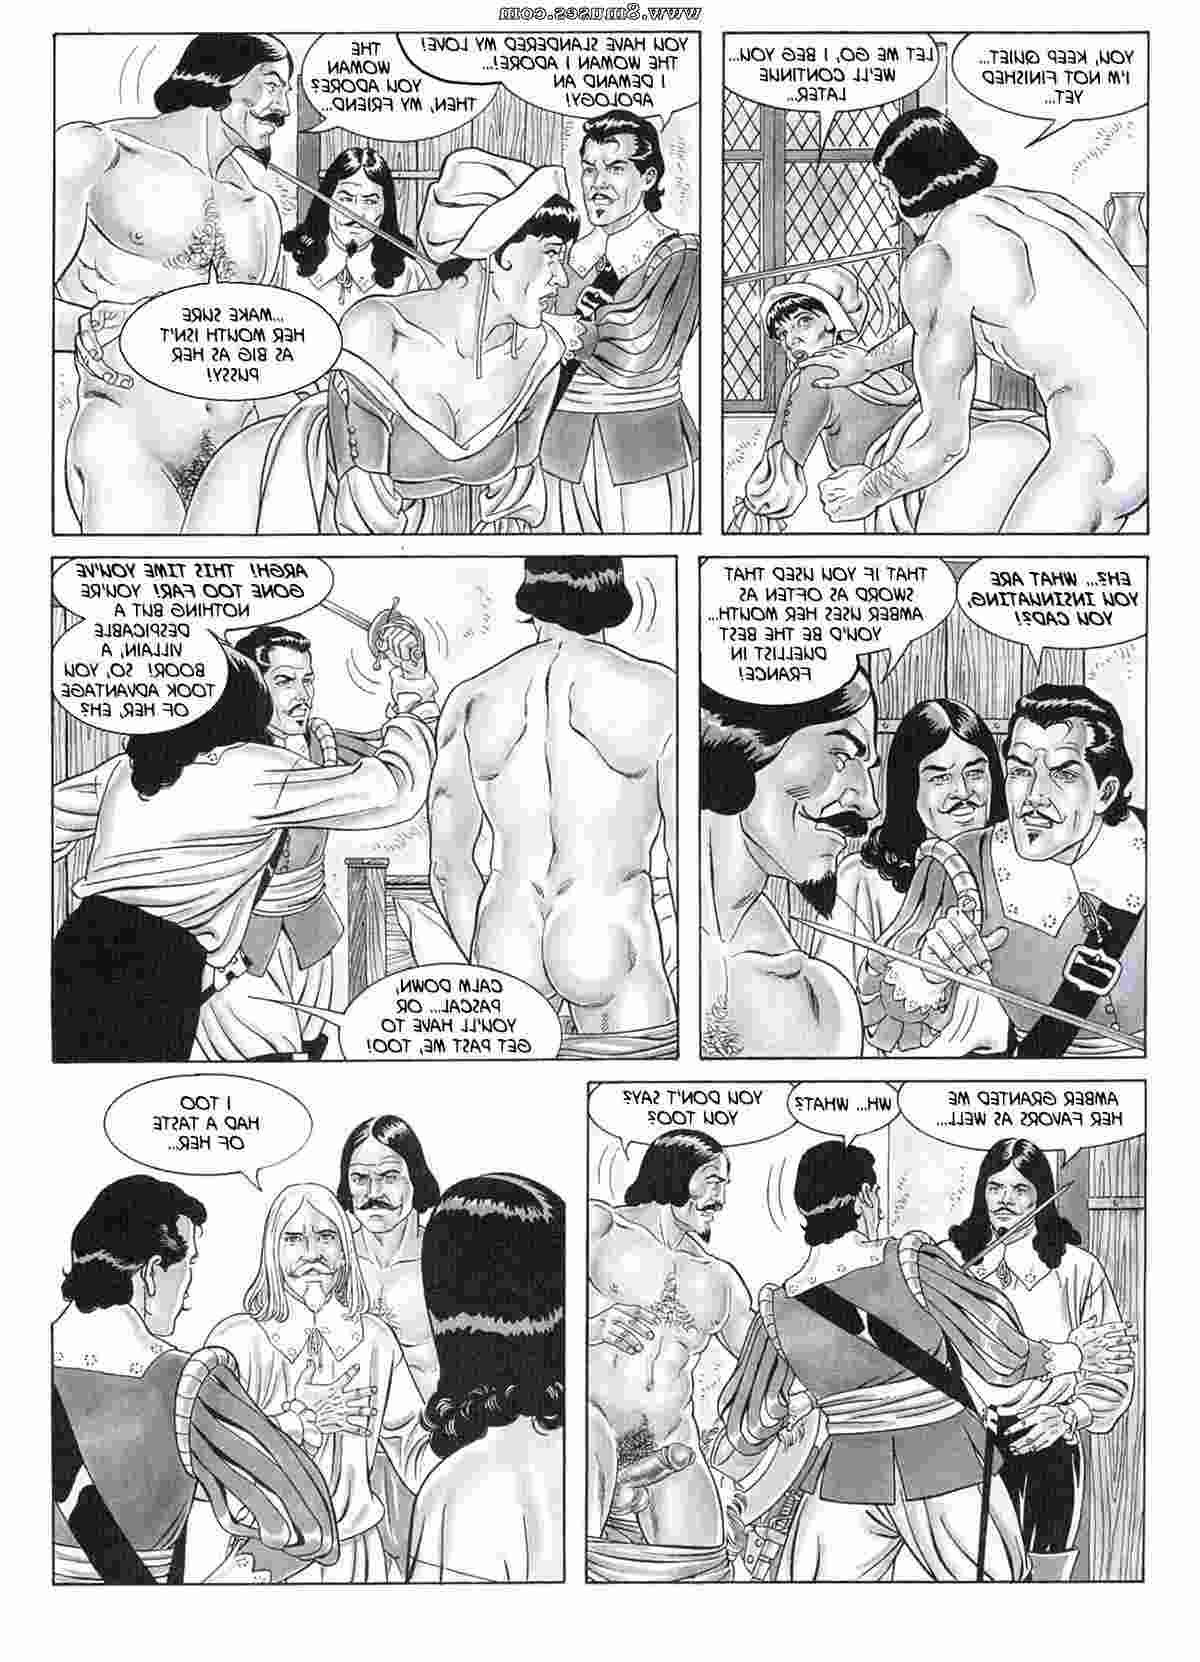 Stramaglia-Morale-Comics/Impetuous-Amber Impetuous_Amber__8muses_-_Sex_and_Porn_Comics_39.jpg